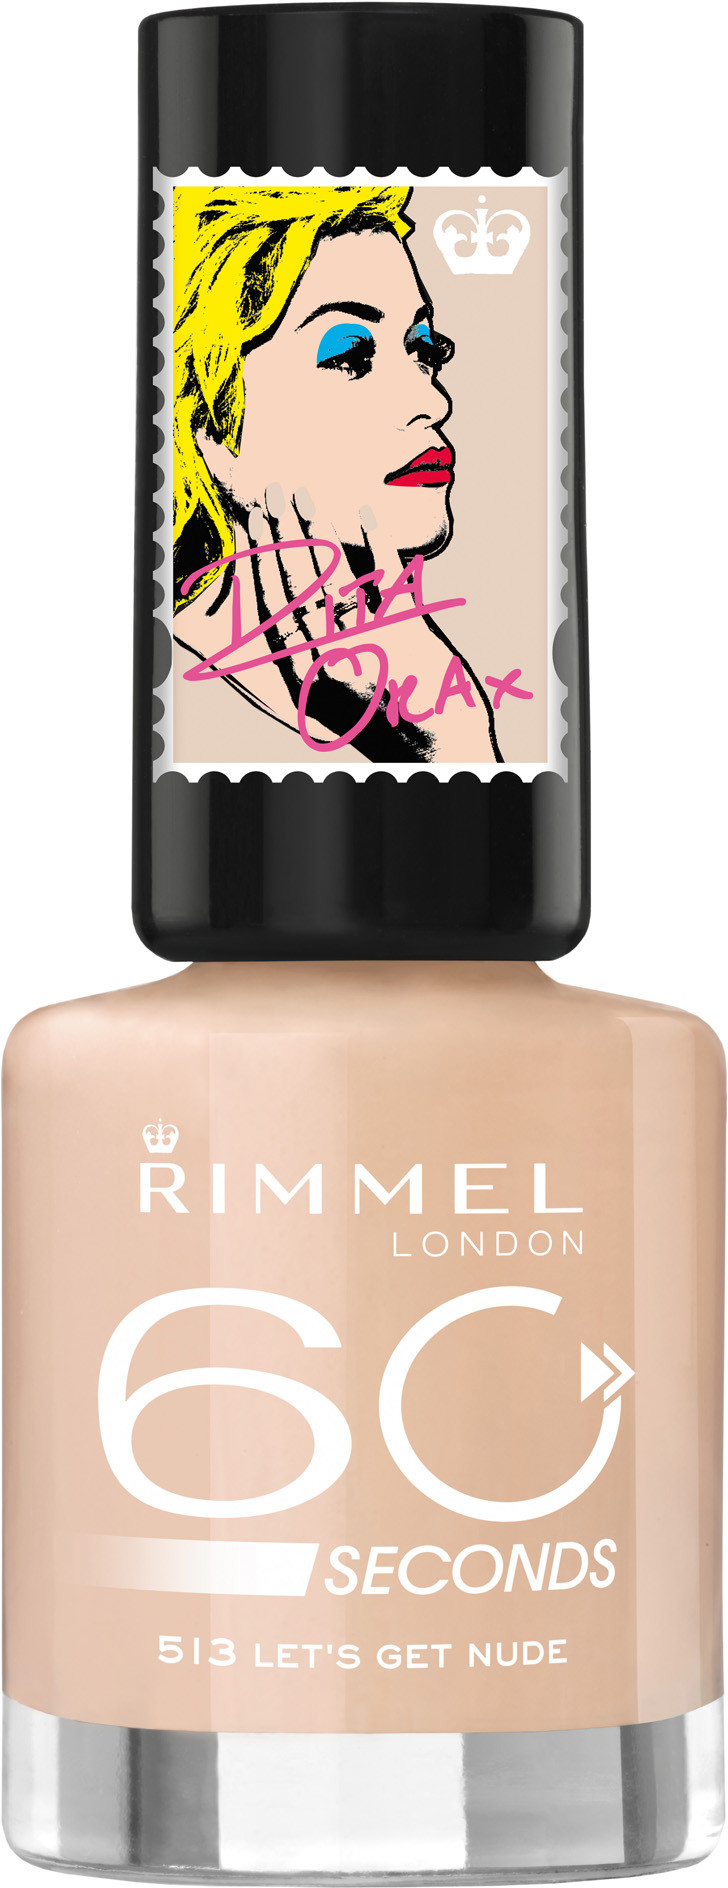 Rimmel 60 Seconds Super Shine lakier do paznokci 513 Lets Get Nude 8ml